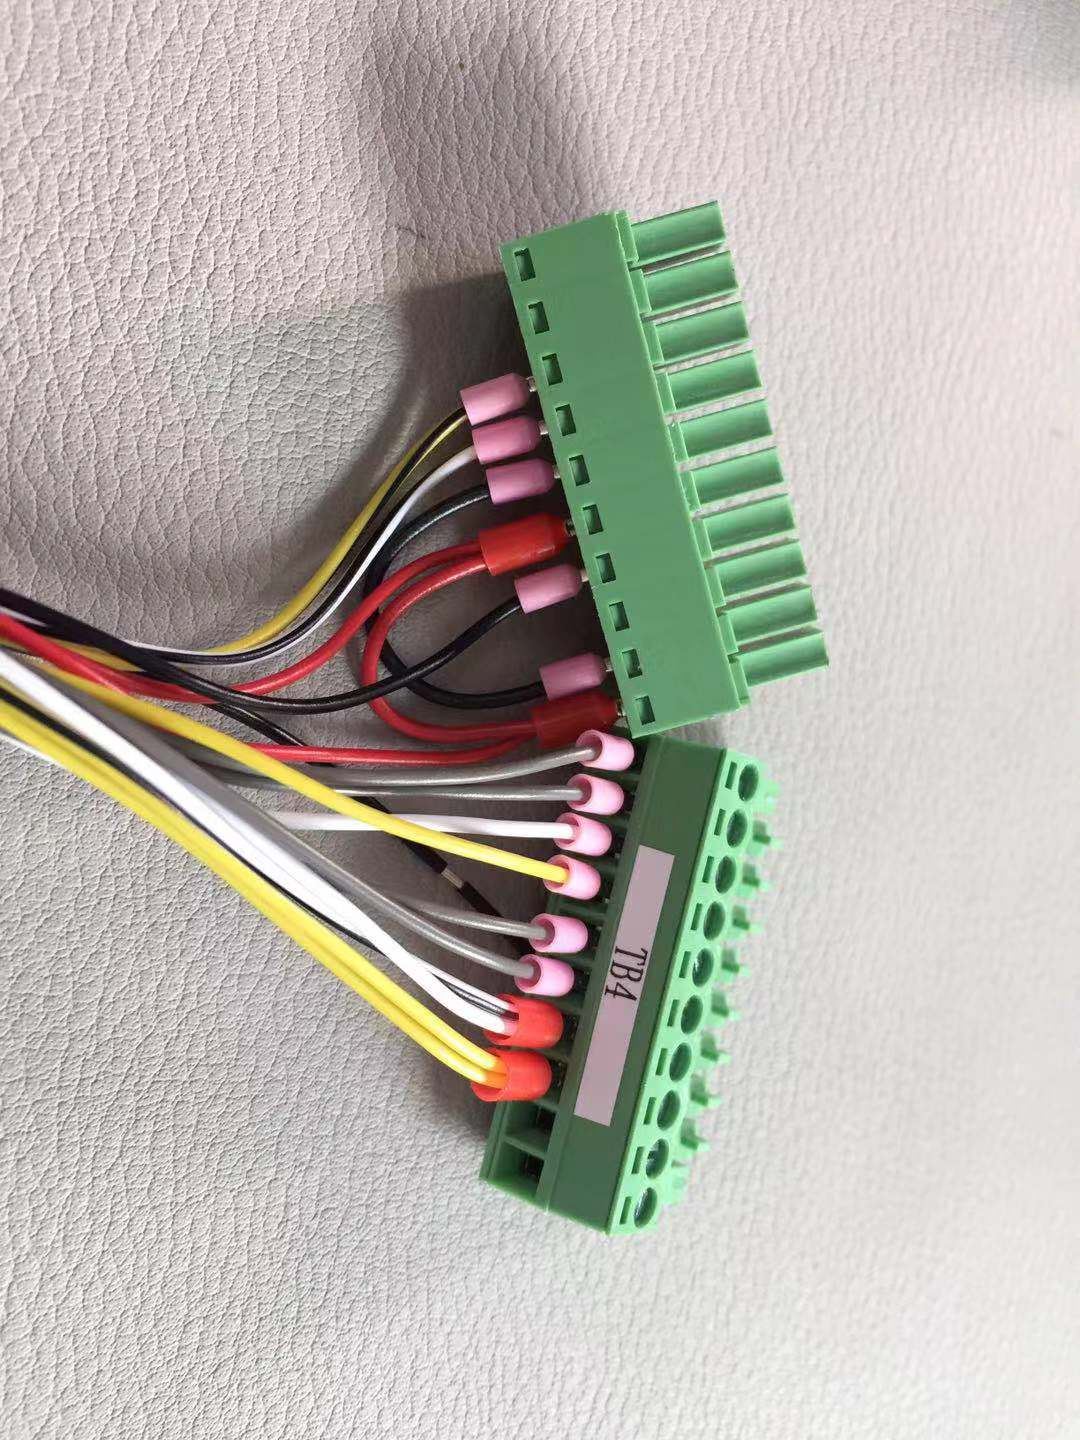 Wire harness for the camera (CCTV)